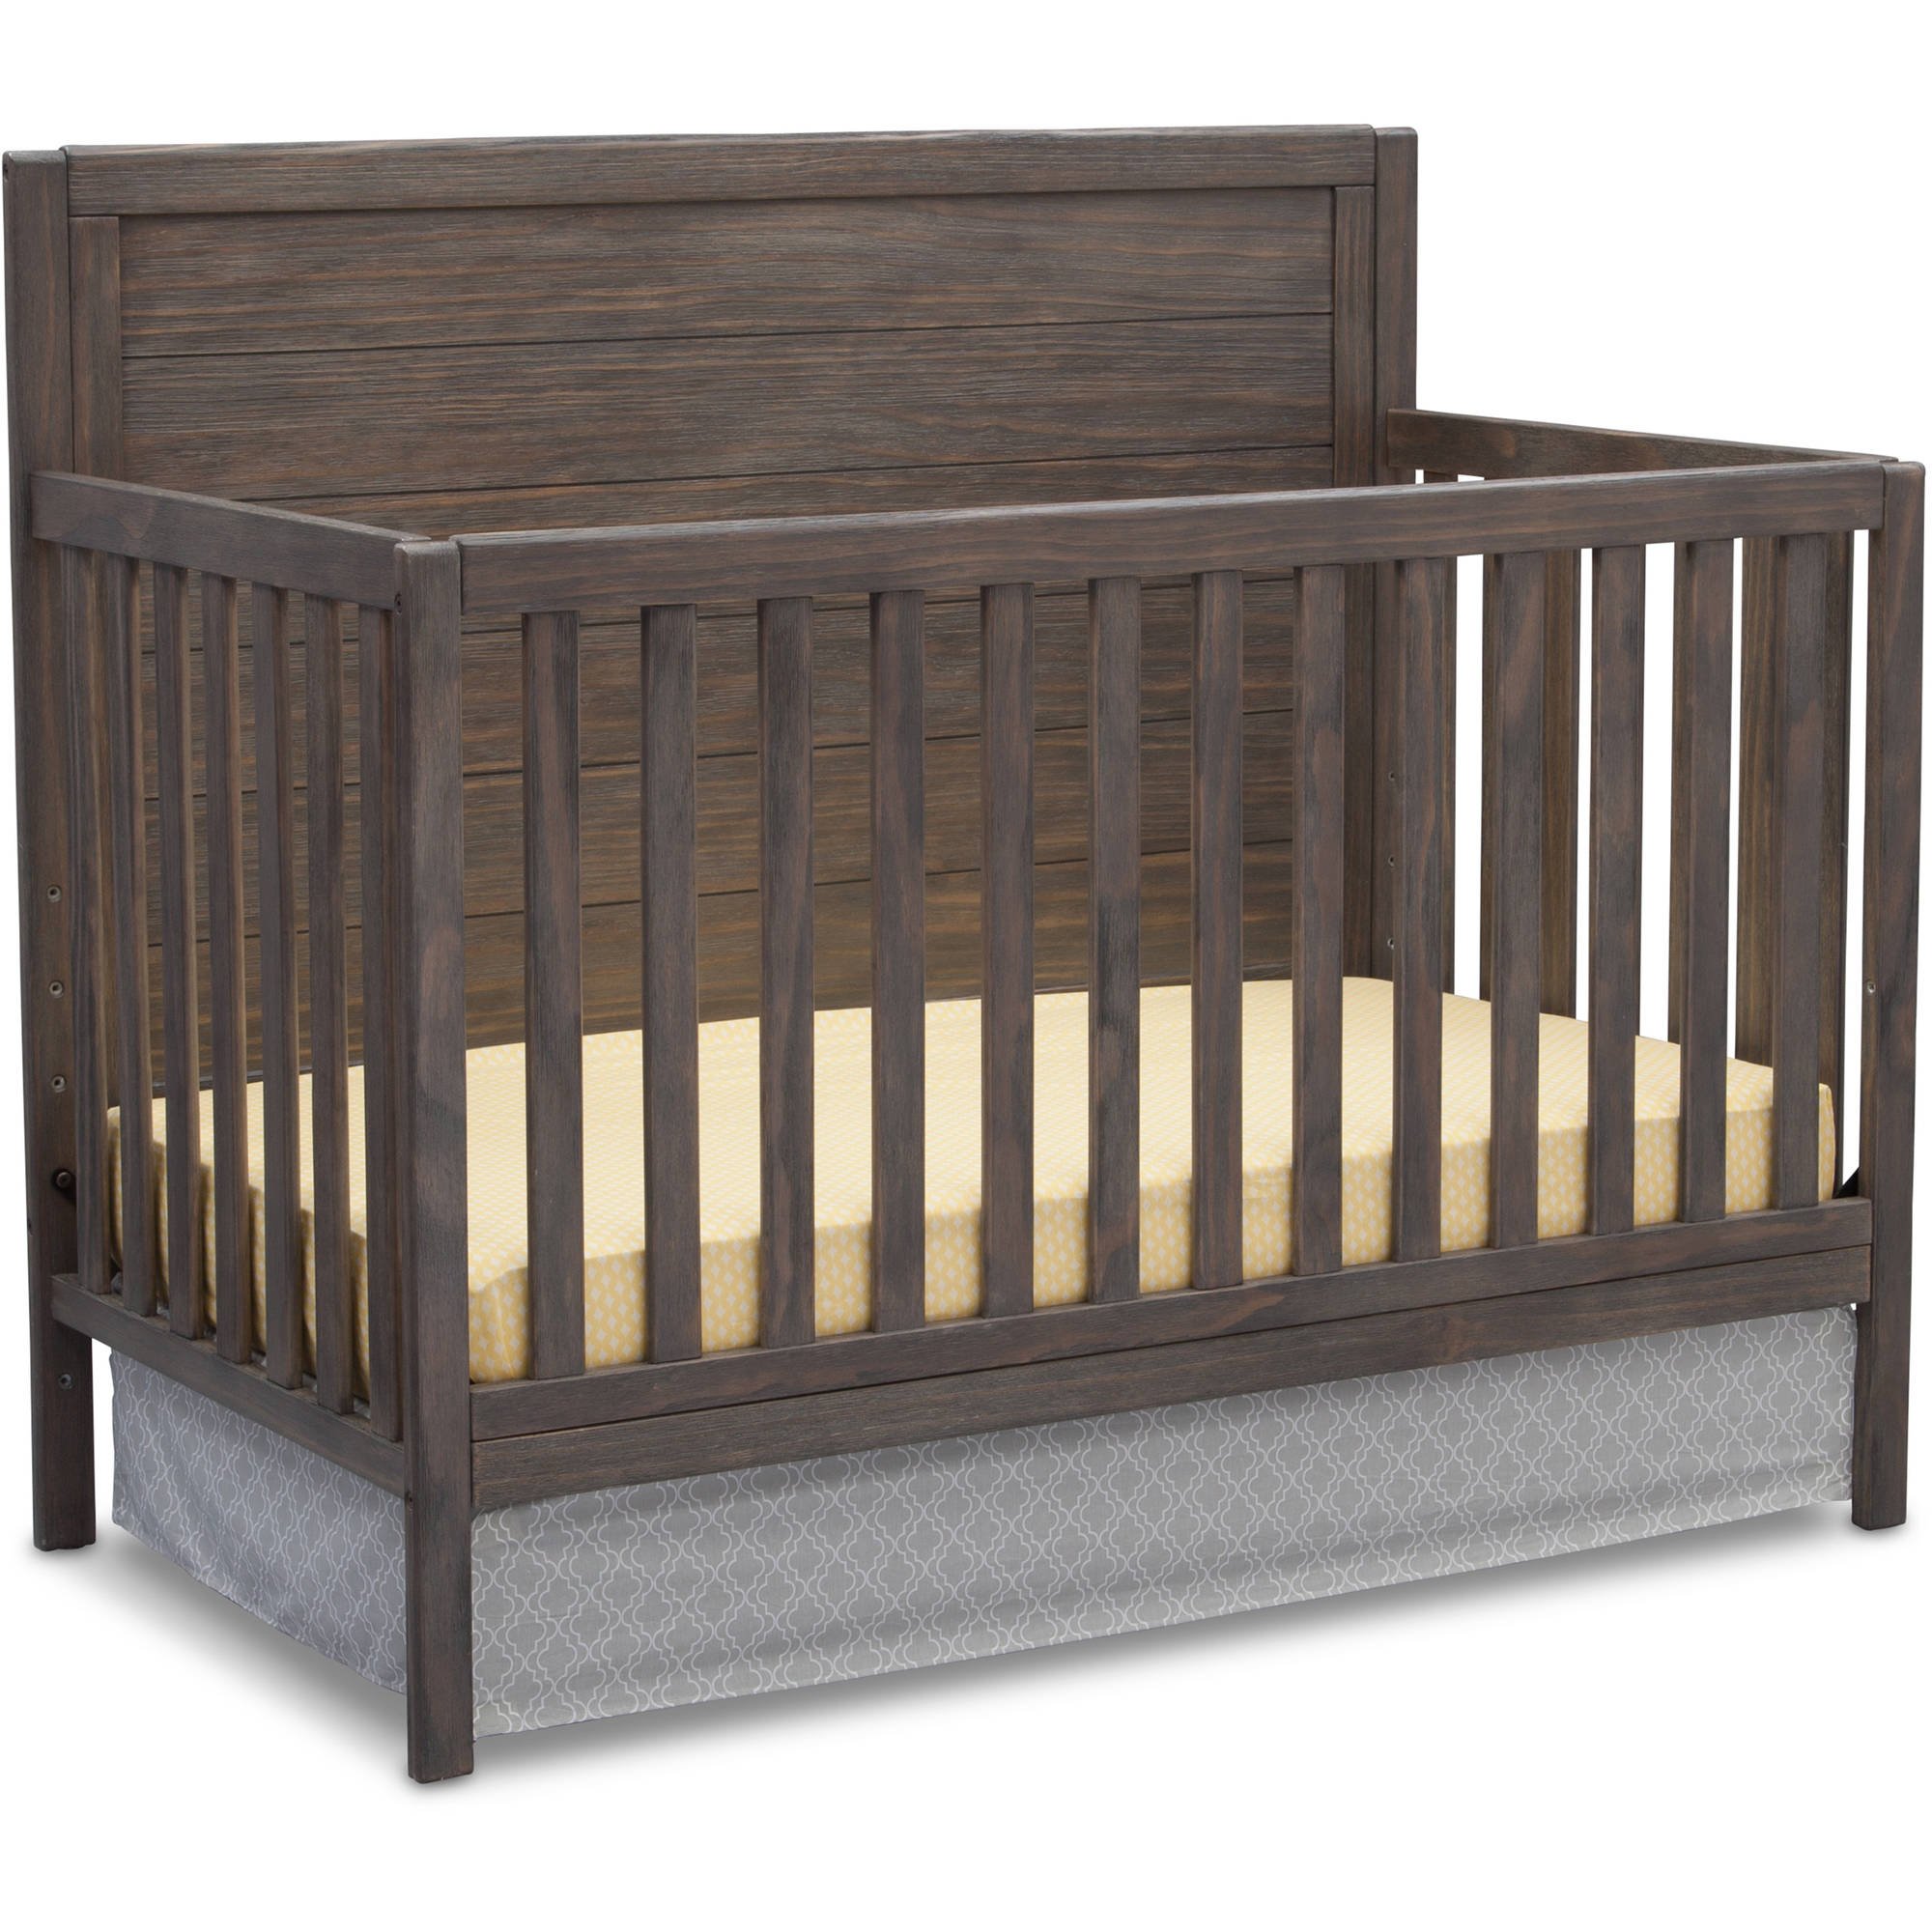 Delta Children Cambridge Mix And Match 4 In 1 Convertible Crib   Rustic Gray